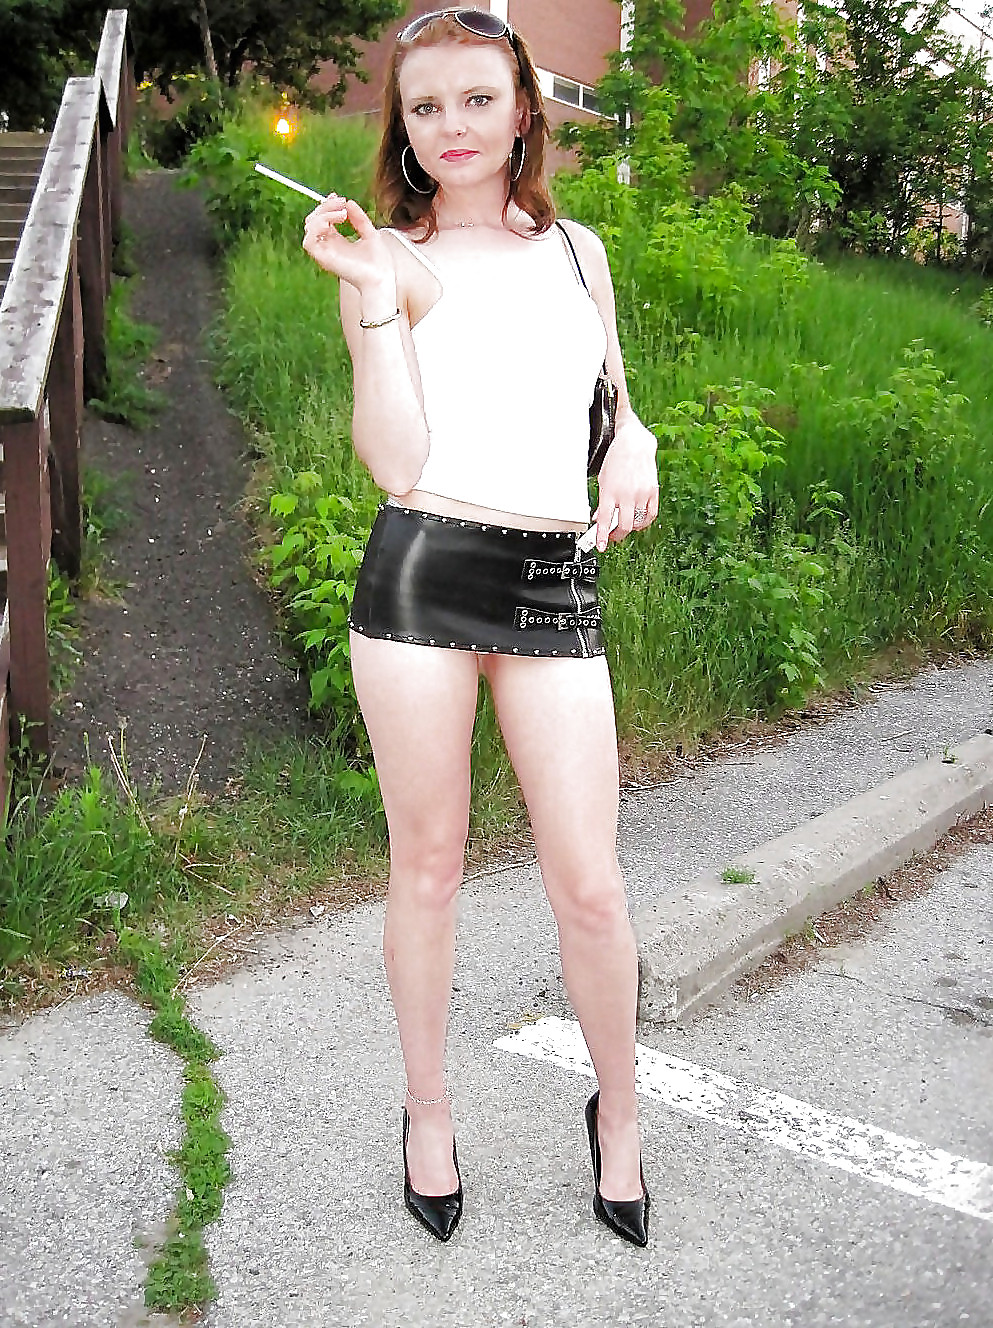 Teen whores in skirts